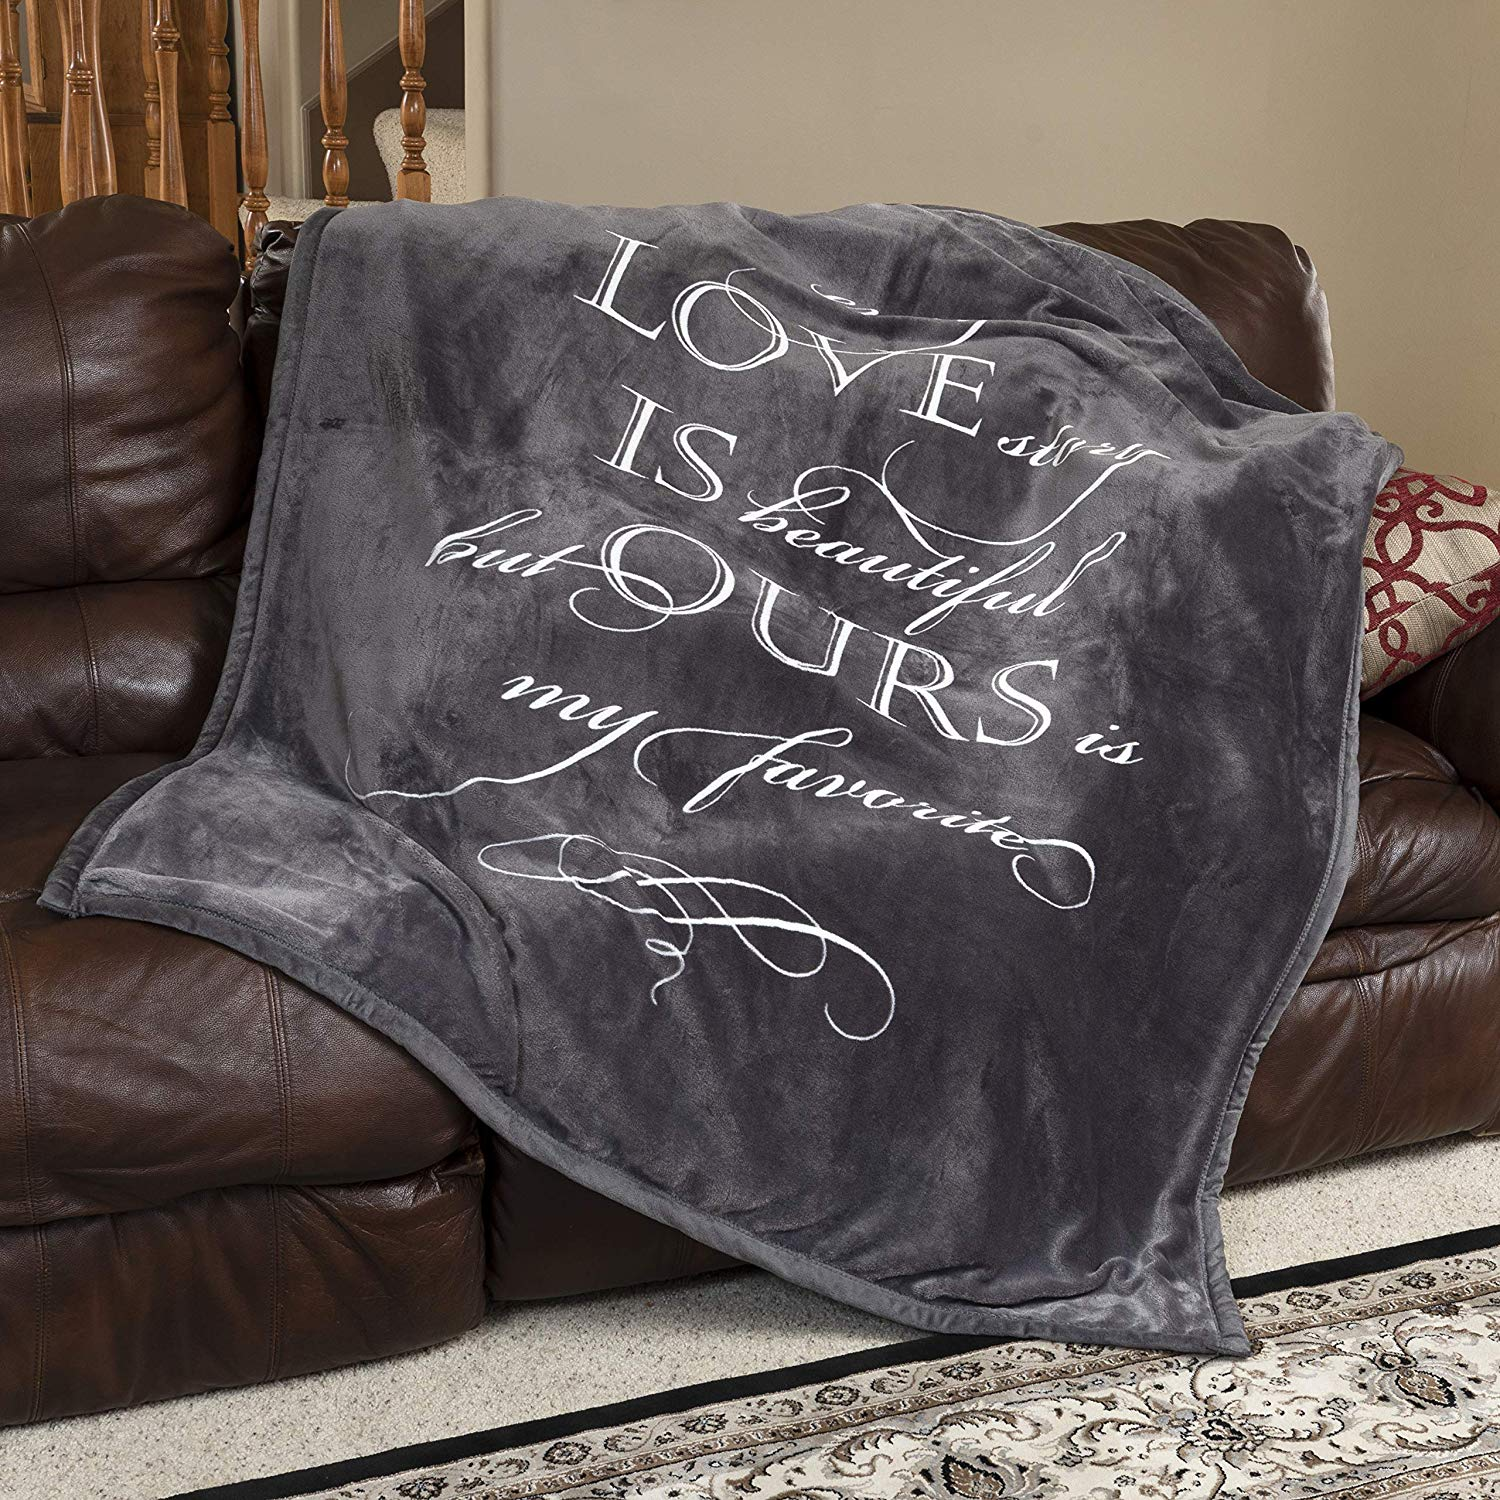 Personalized blanket with love note